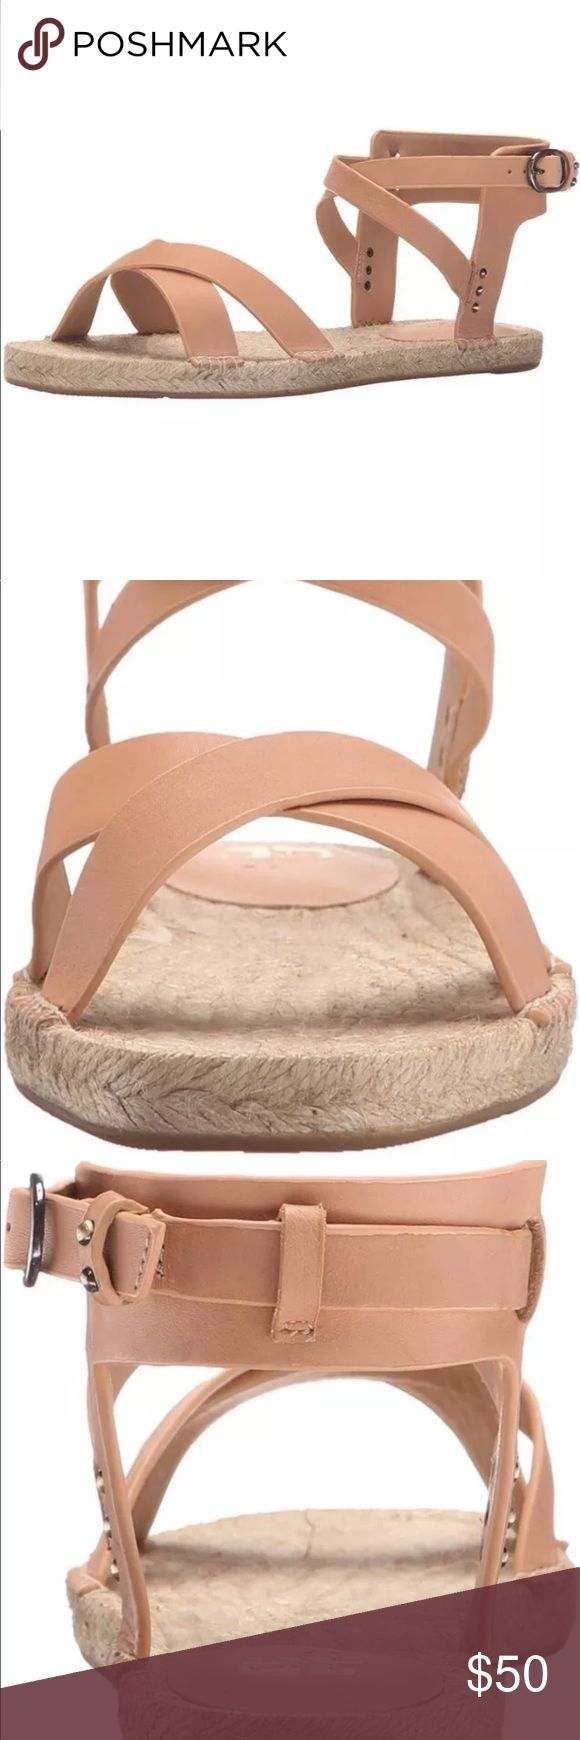 Joe's jeans nude espadrille tiger Ankle sandal Brand new. Never worn. No box. Flat espadrille sandal with raw edge leather upper. The perfect casual clean lined sandal  Features Leather Imported Rubber sole Soft leather and cushioned outsole Joe's Jeans Shoes Sandals